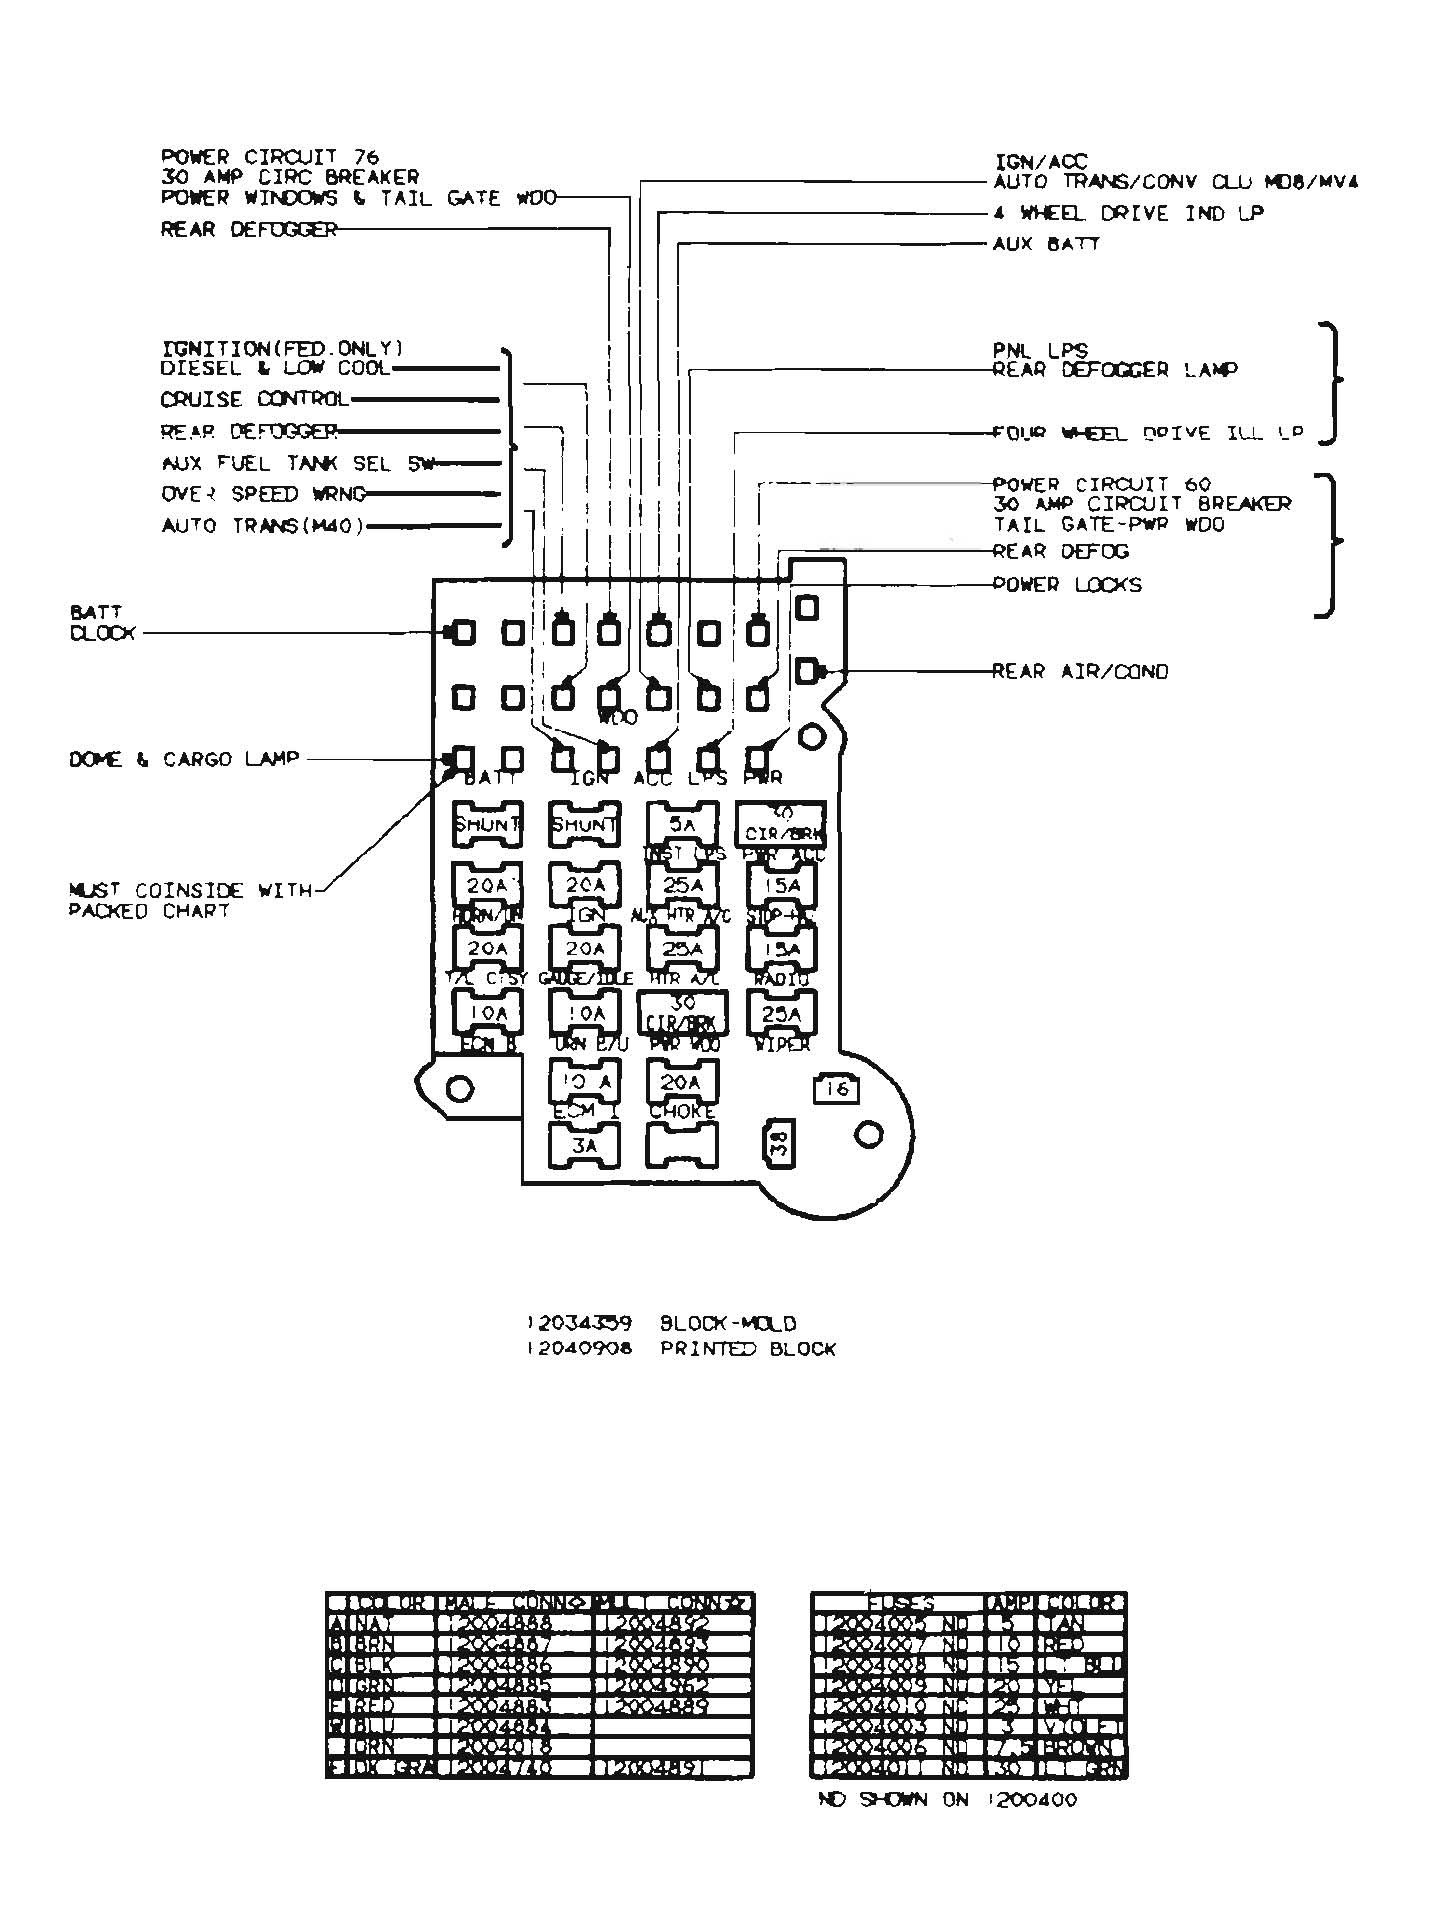 hight resolution of 81 chevy truck fuse diagram wiring library 82 chevy c10 fuse box 81 chevy fuse box